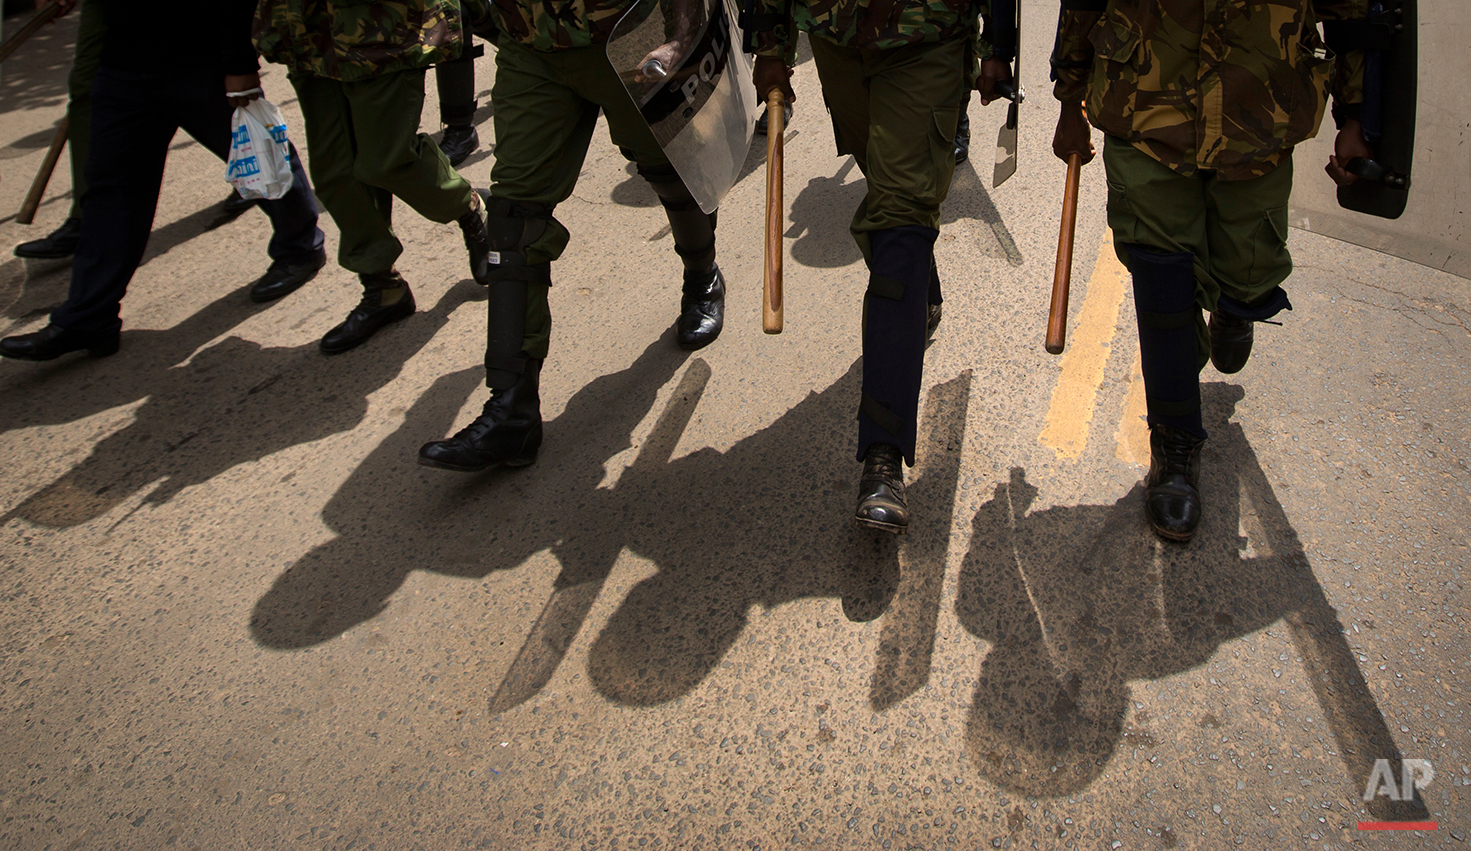 Kenyan riot police patrol and search for protesters on a street in downtown Nairobi, Kenya Monday, May 23, 2016. Kenya's police shot, beat and tear gassed opposition demonstrators across the country who tried to gather to call for the electoral commission to be dissolved due to allegations of bias and corruption. (AP Photo/Ben Curtis)